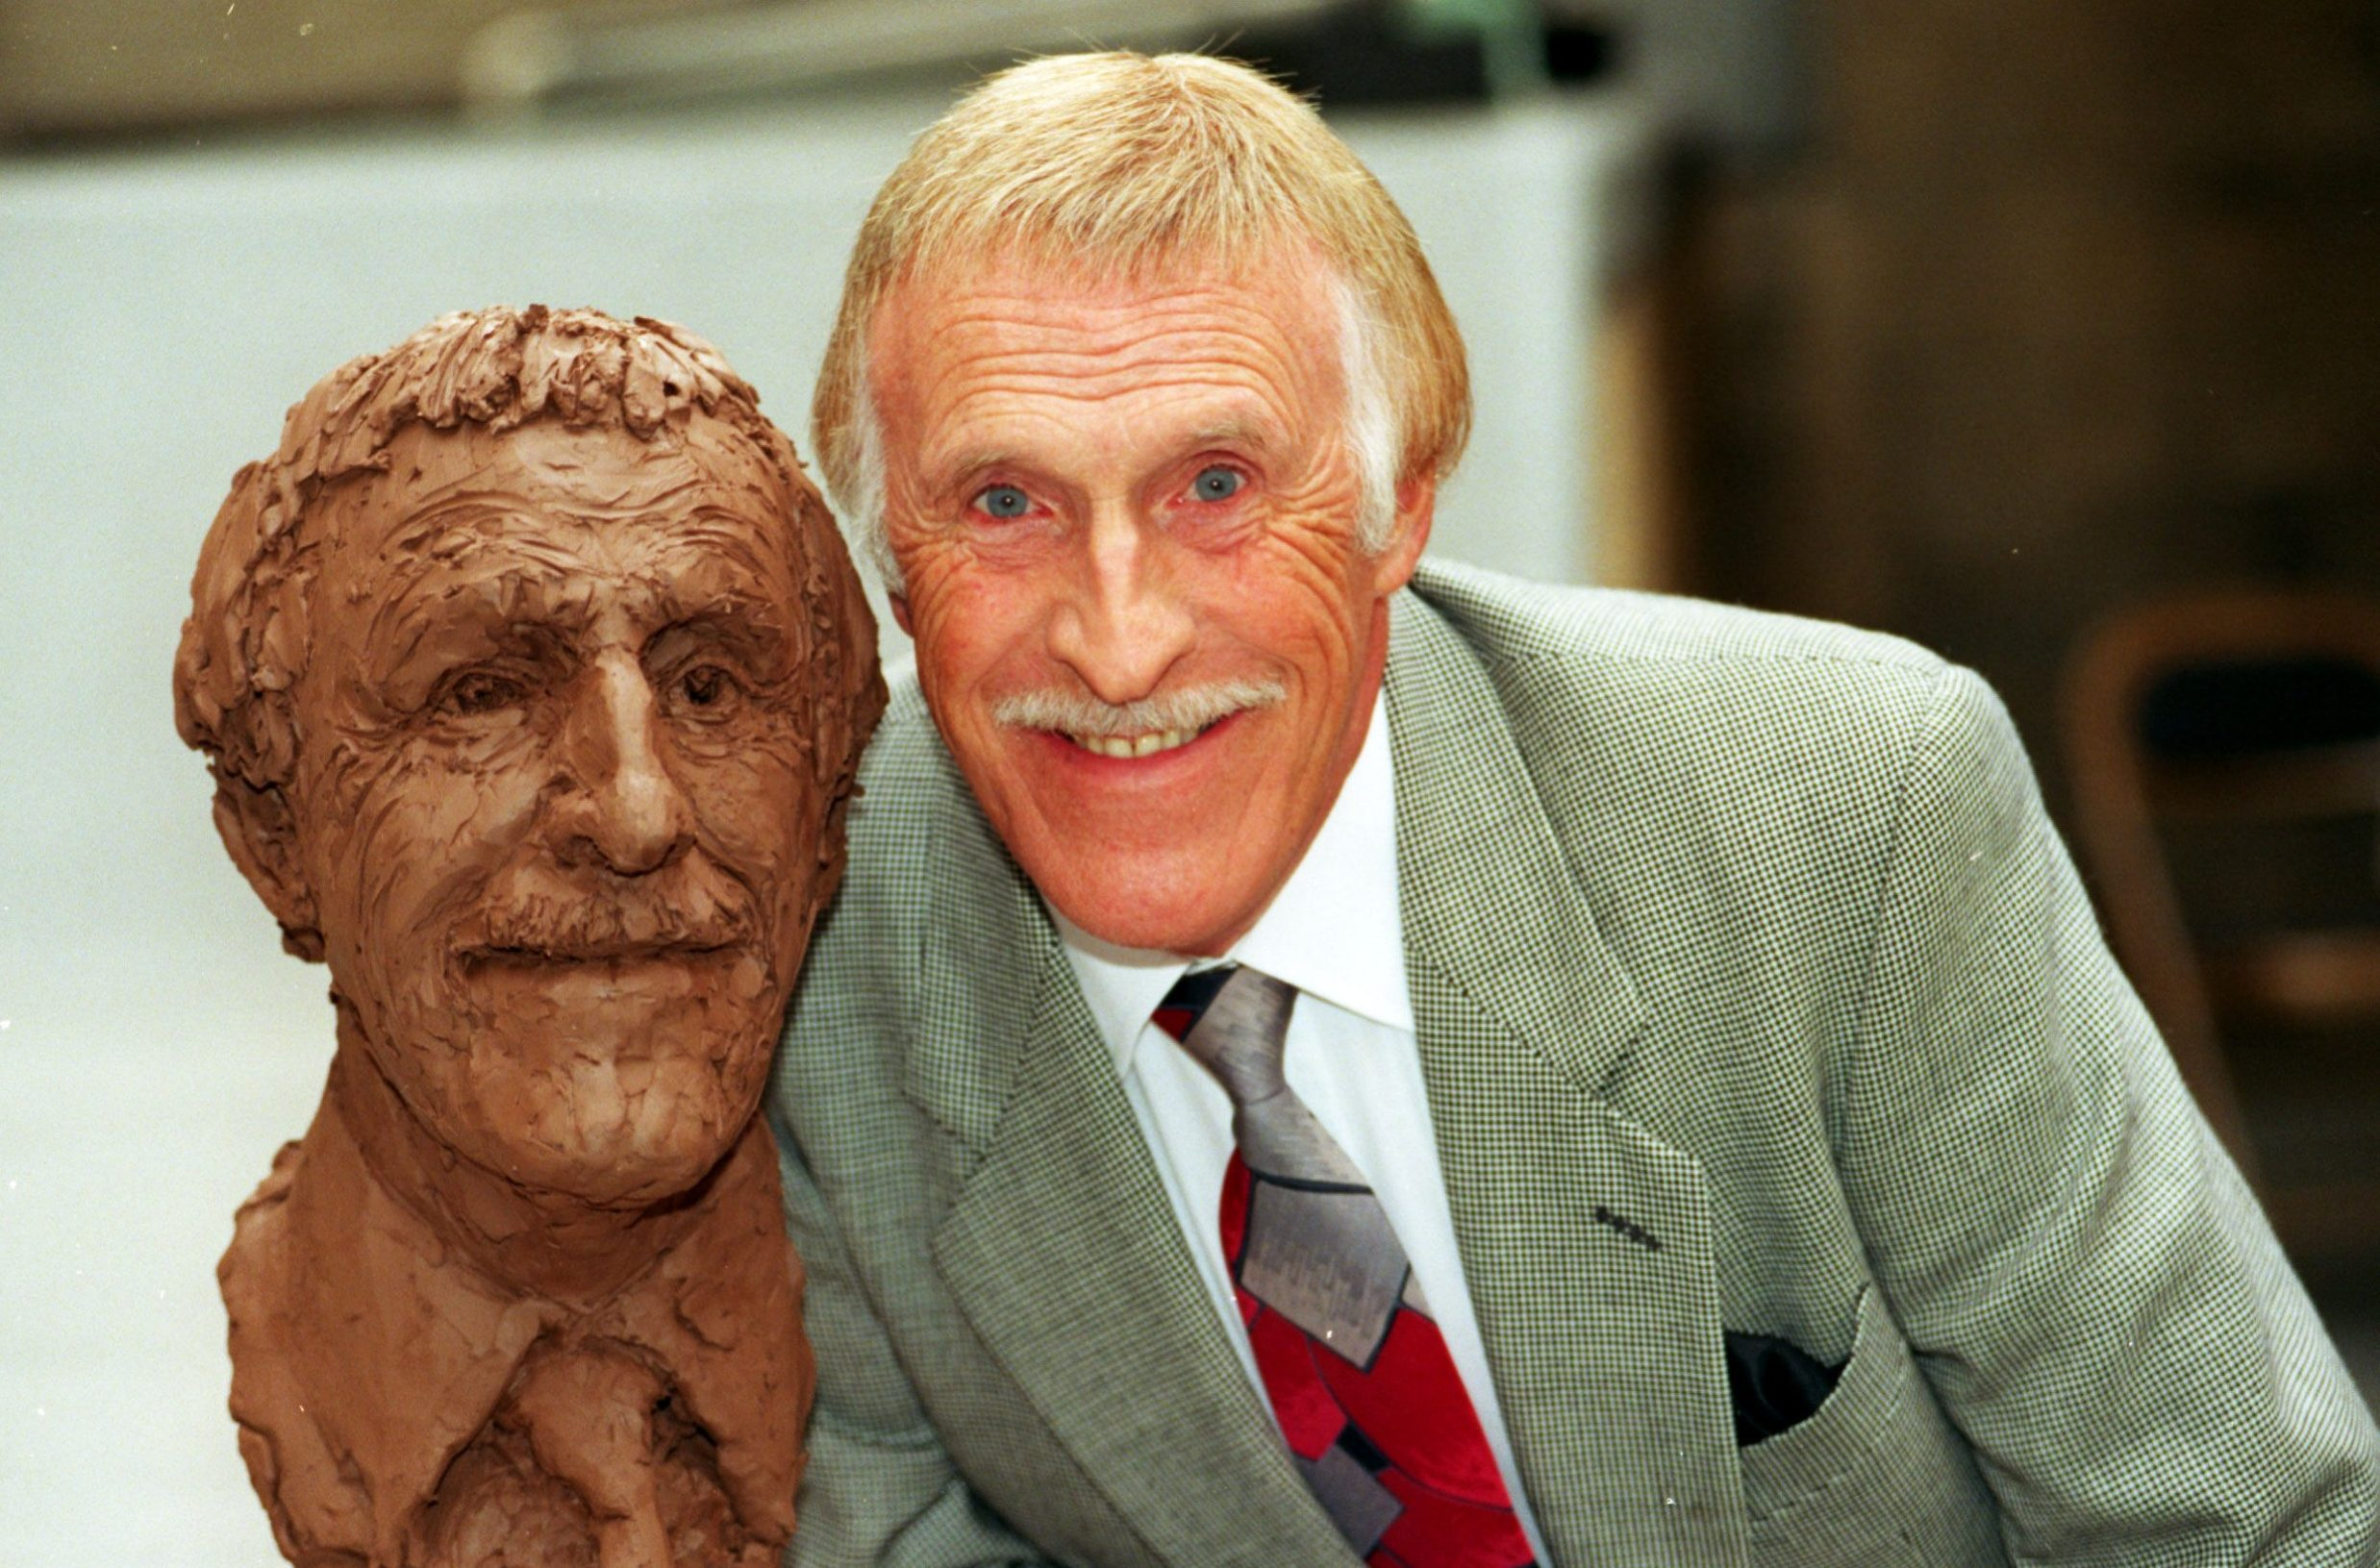 The National Television Awards announce tribute to the late Bruce Forsyth as voting opens